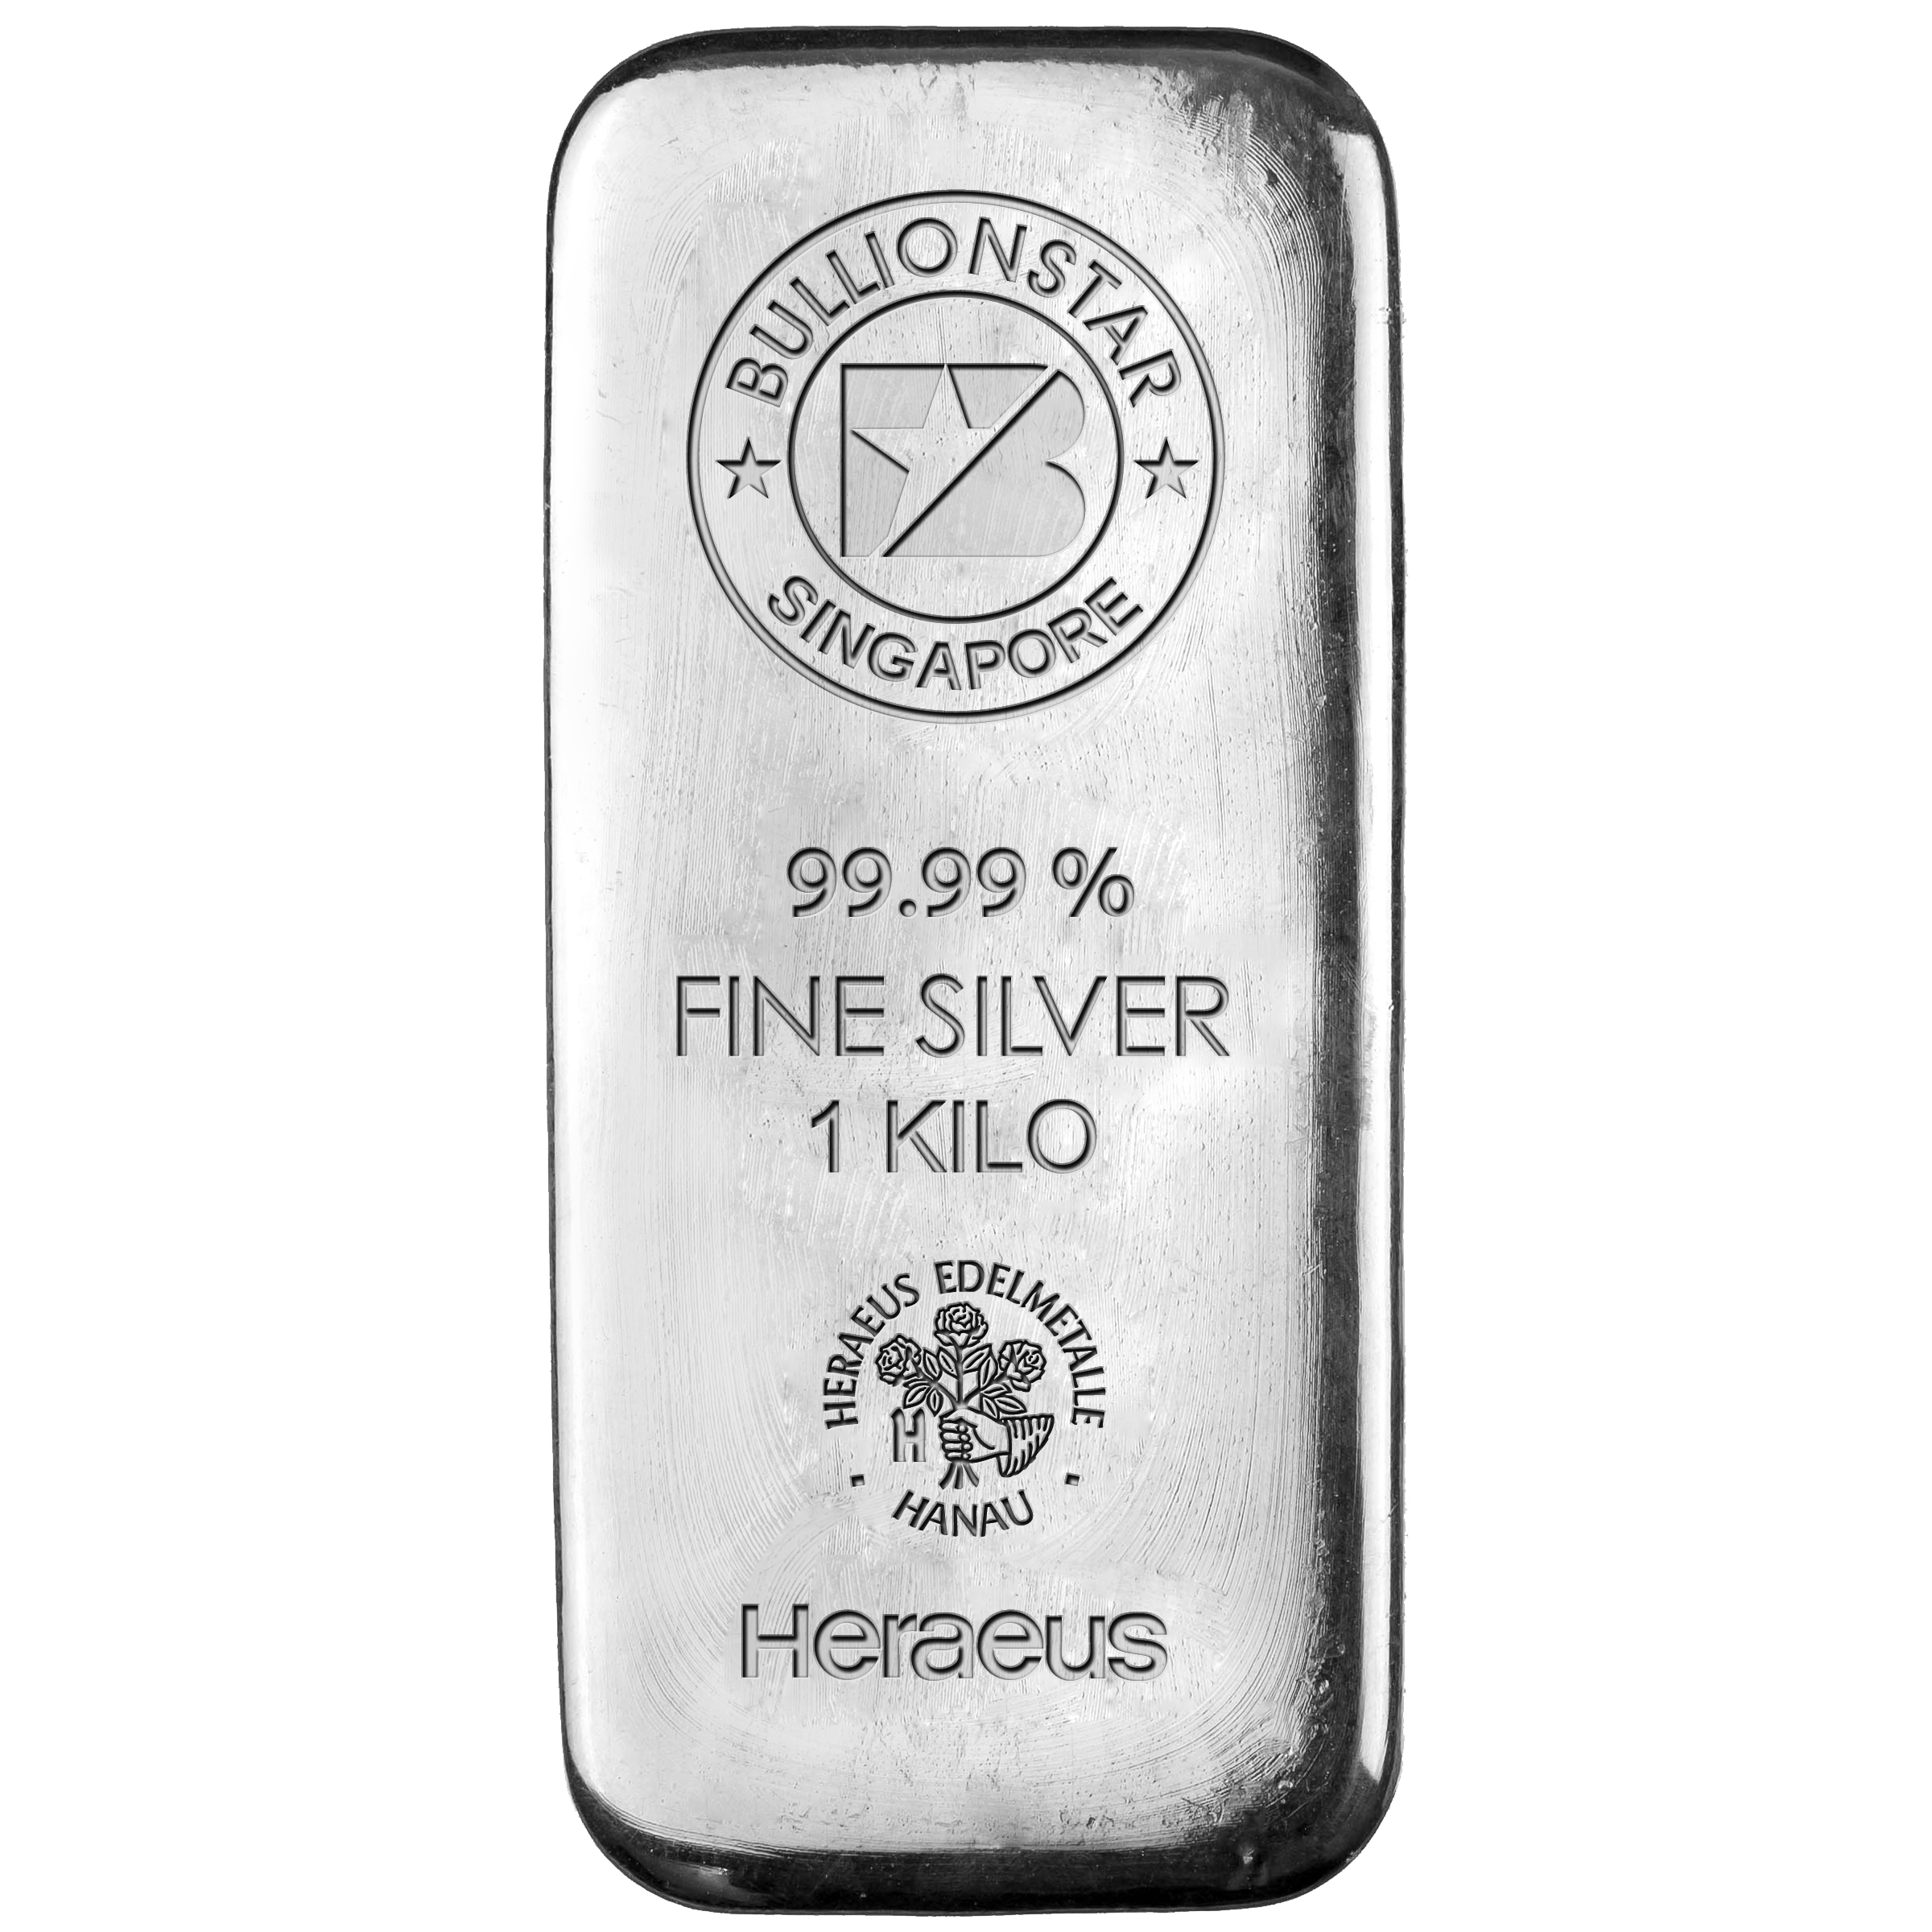 The BullionStar silver bar which can be bought and sold without any spread between the buy and sell price